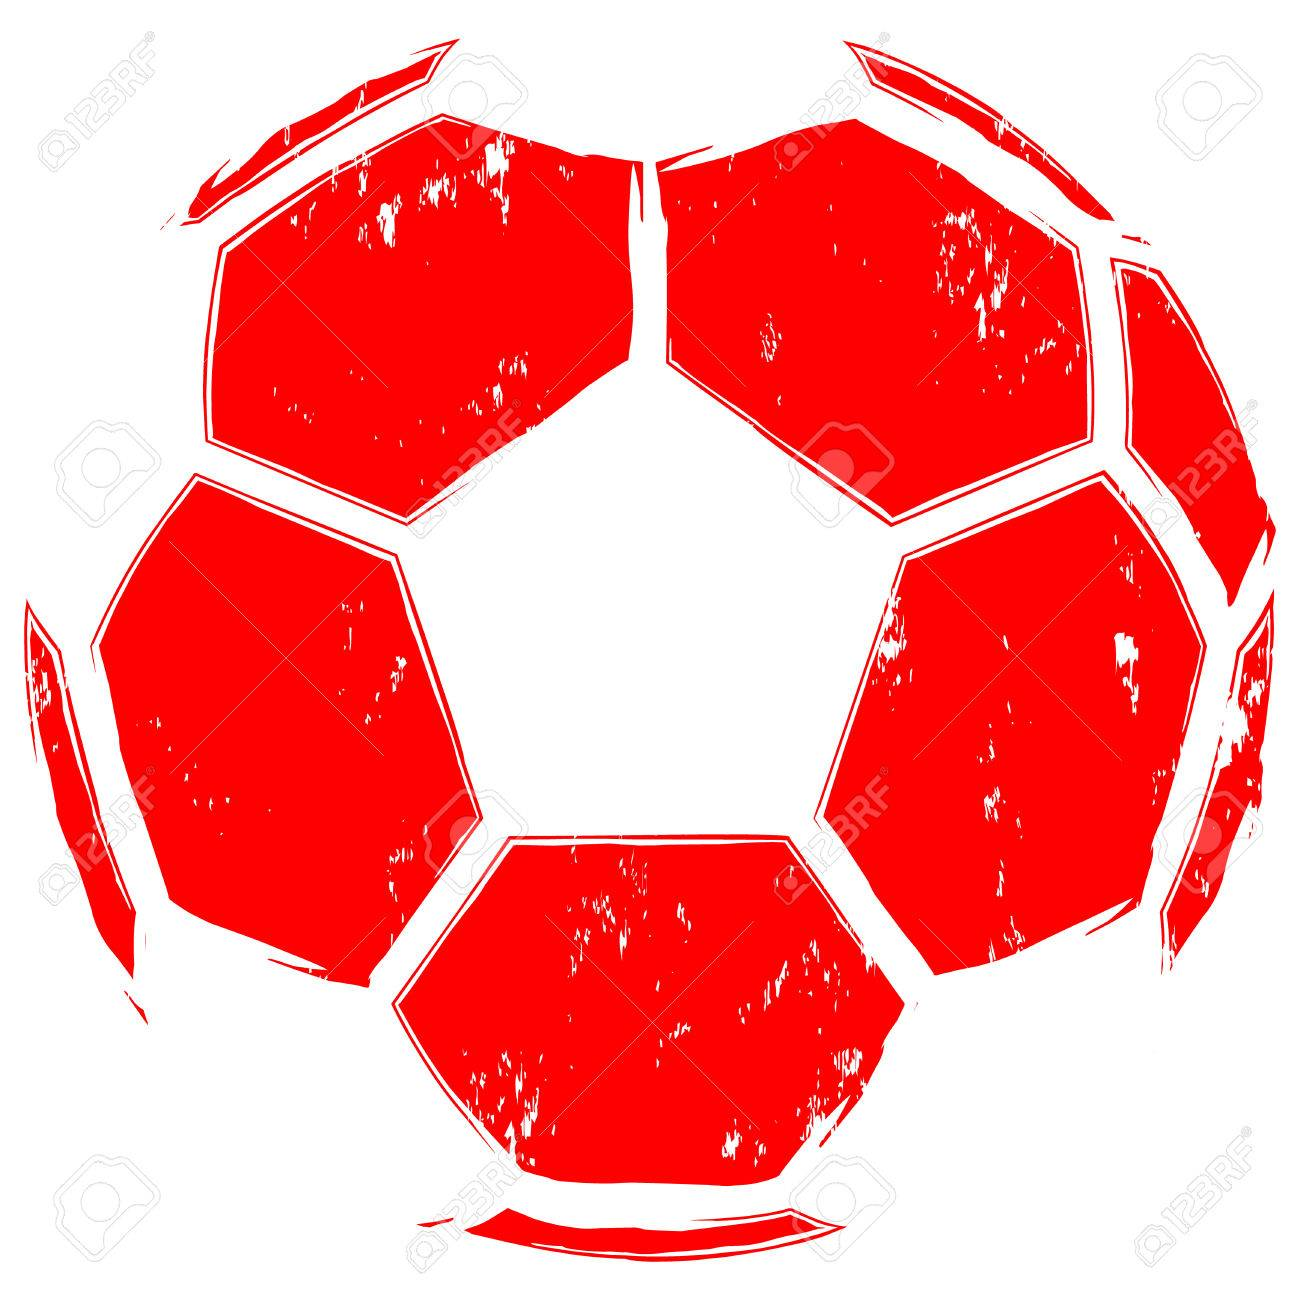 Abstract Vector Illustration Red Football Ball Design For Print